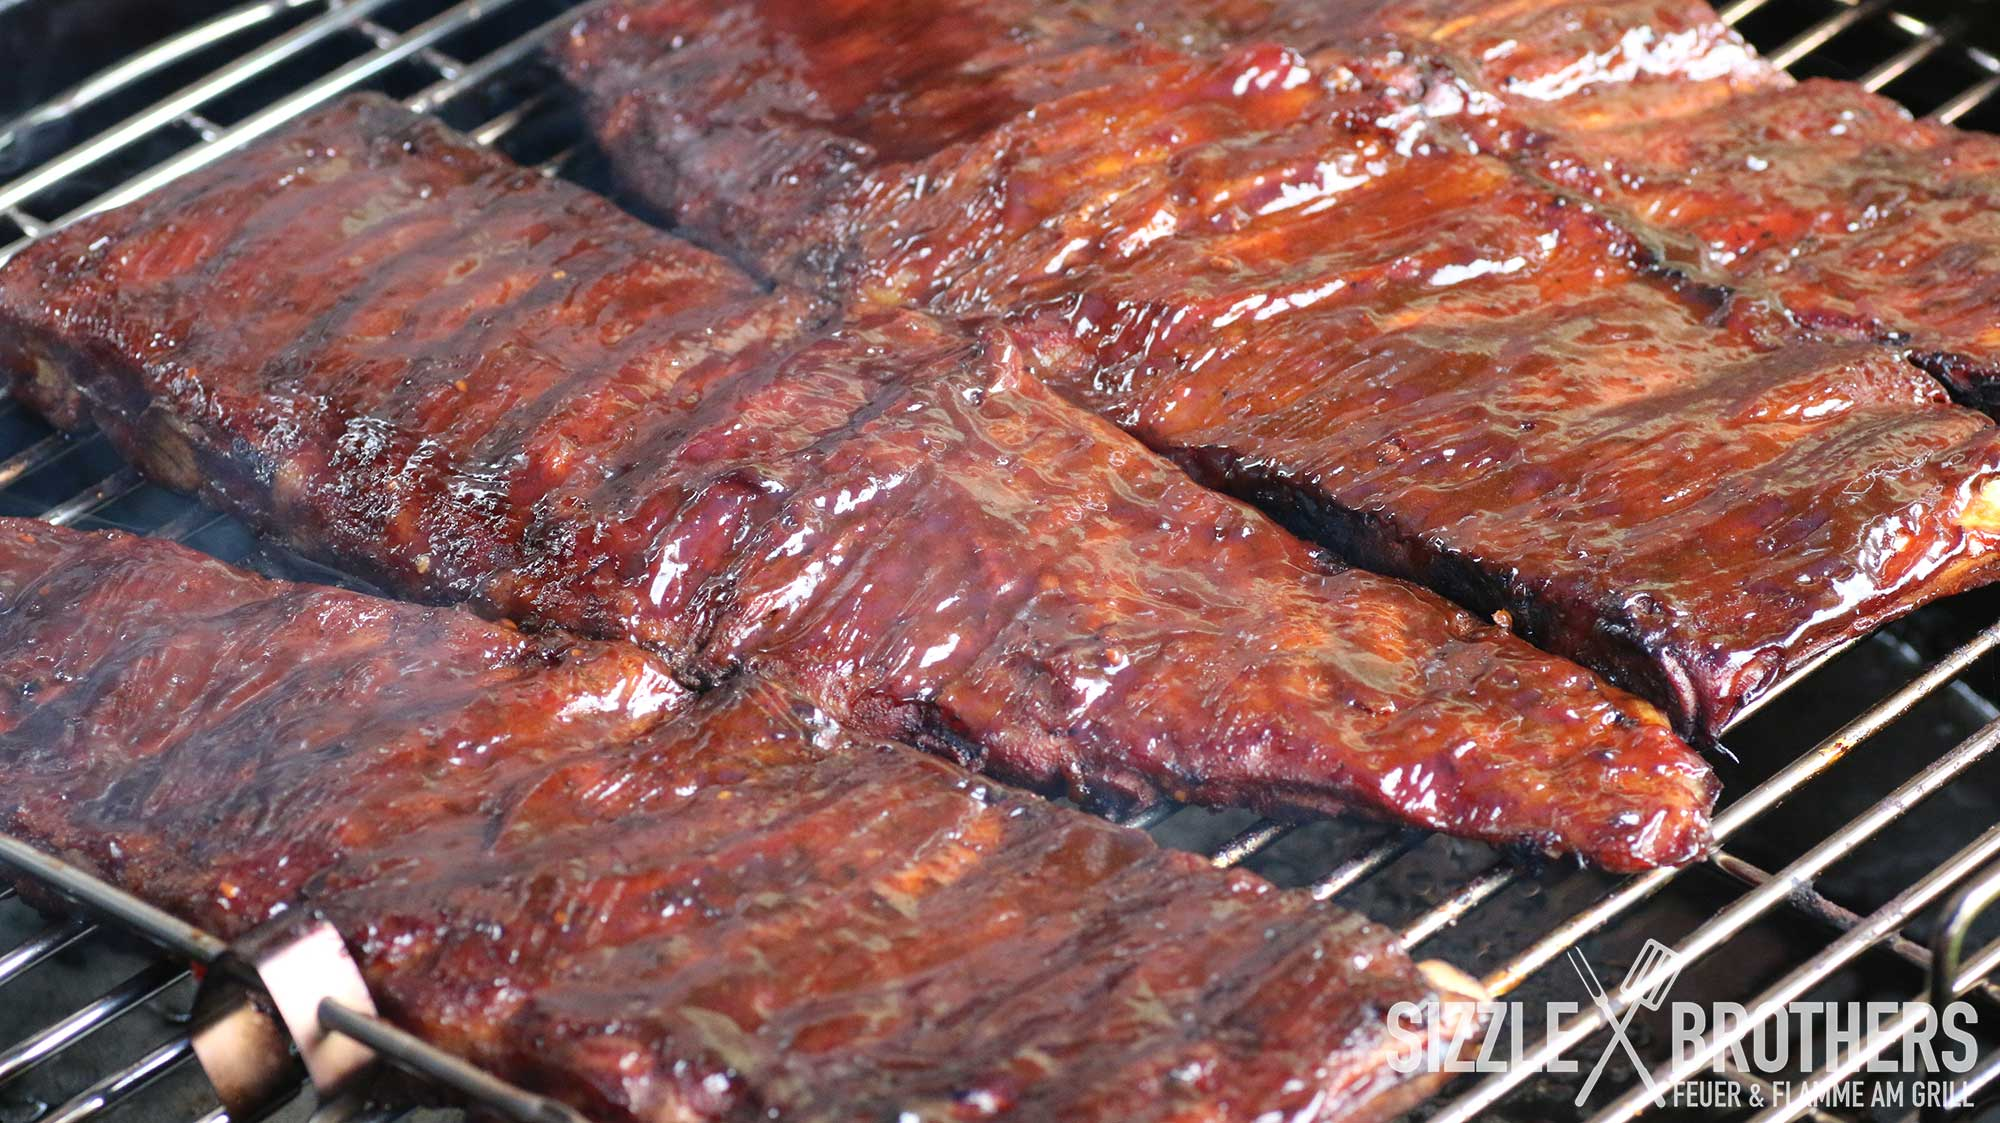 Sizzle Brothers Spareribs Vom Gasgrill : Sous vide ribs sous vide und bbq bbq rezept smoker